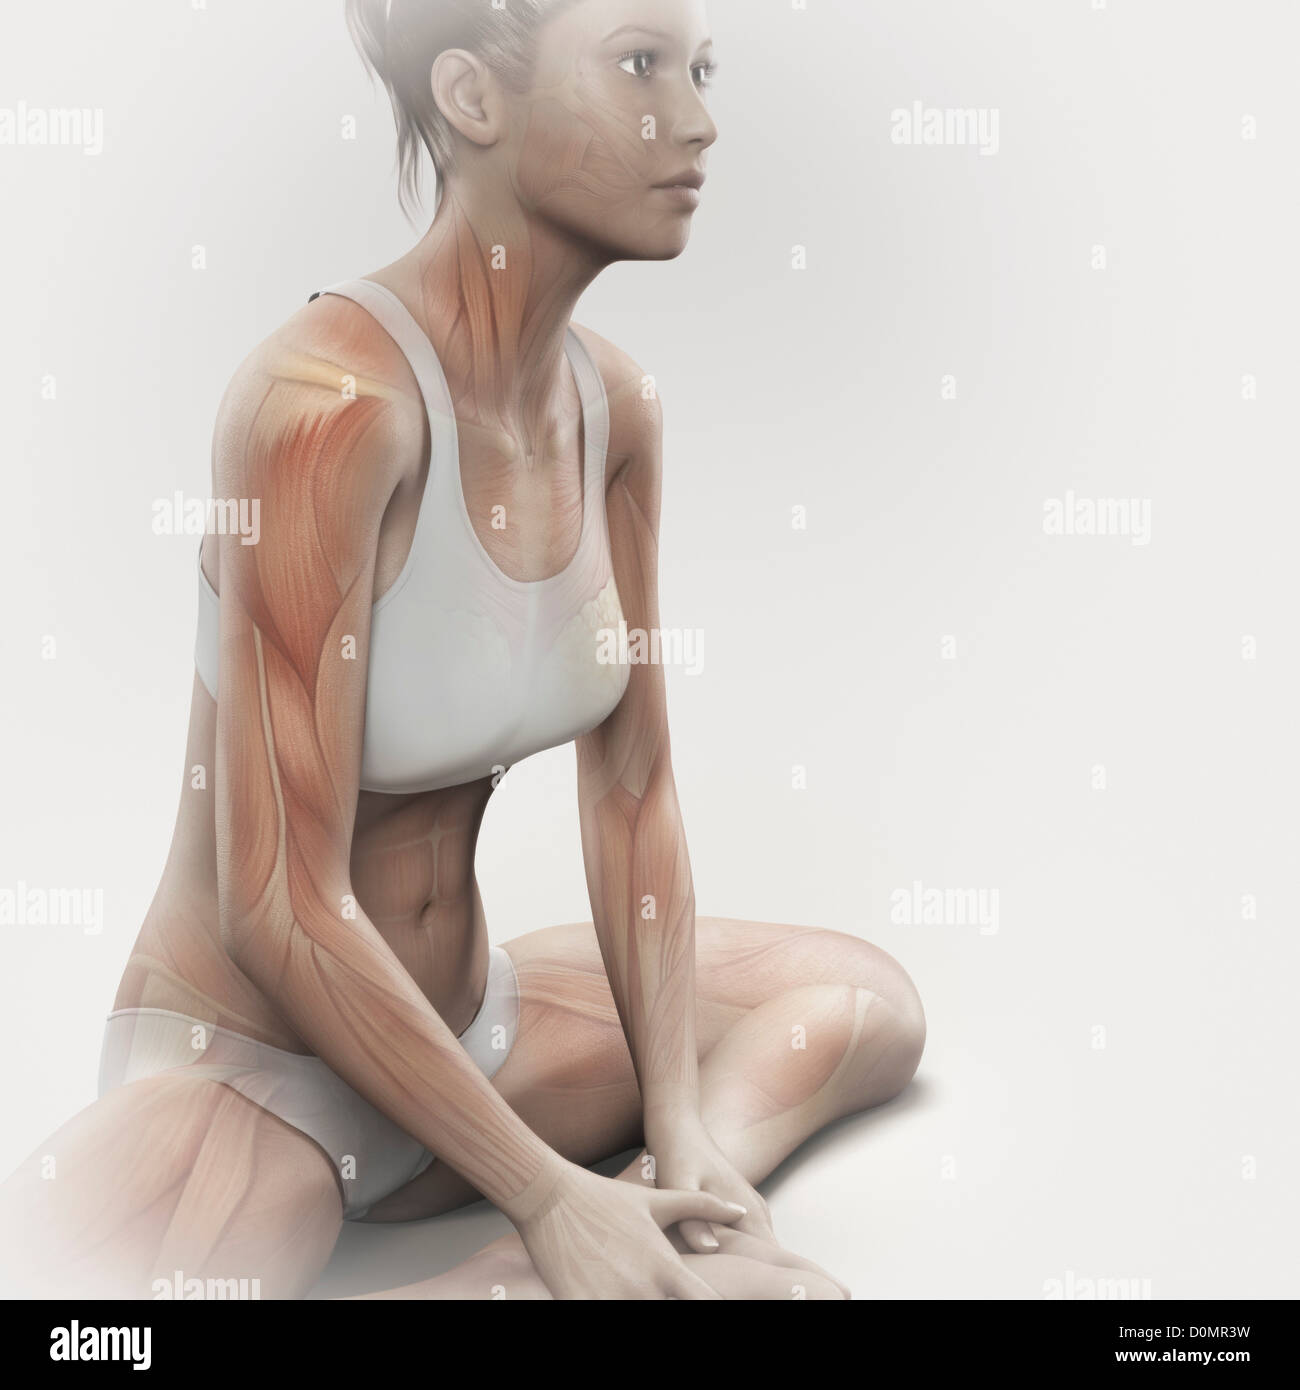 Musculature layered over female body in bound angle pose showing activity certain muscle groups in this particular - Stock Image